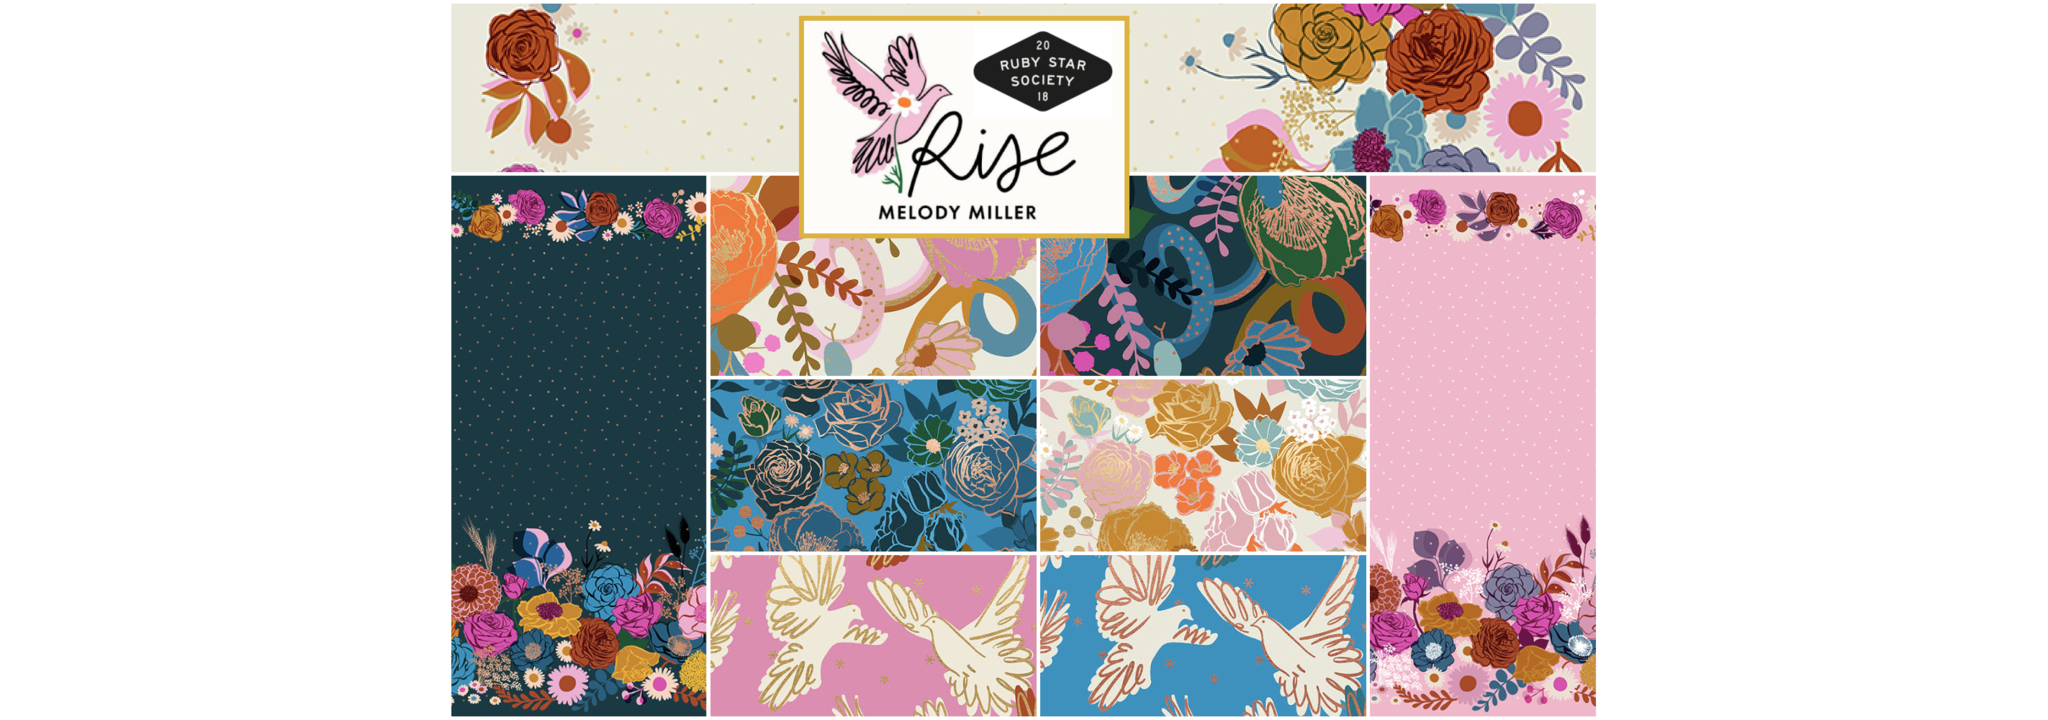 Rise by Melody Miller for Ruby Star Society